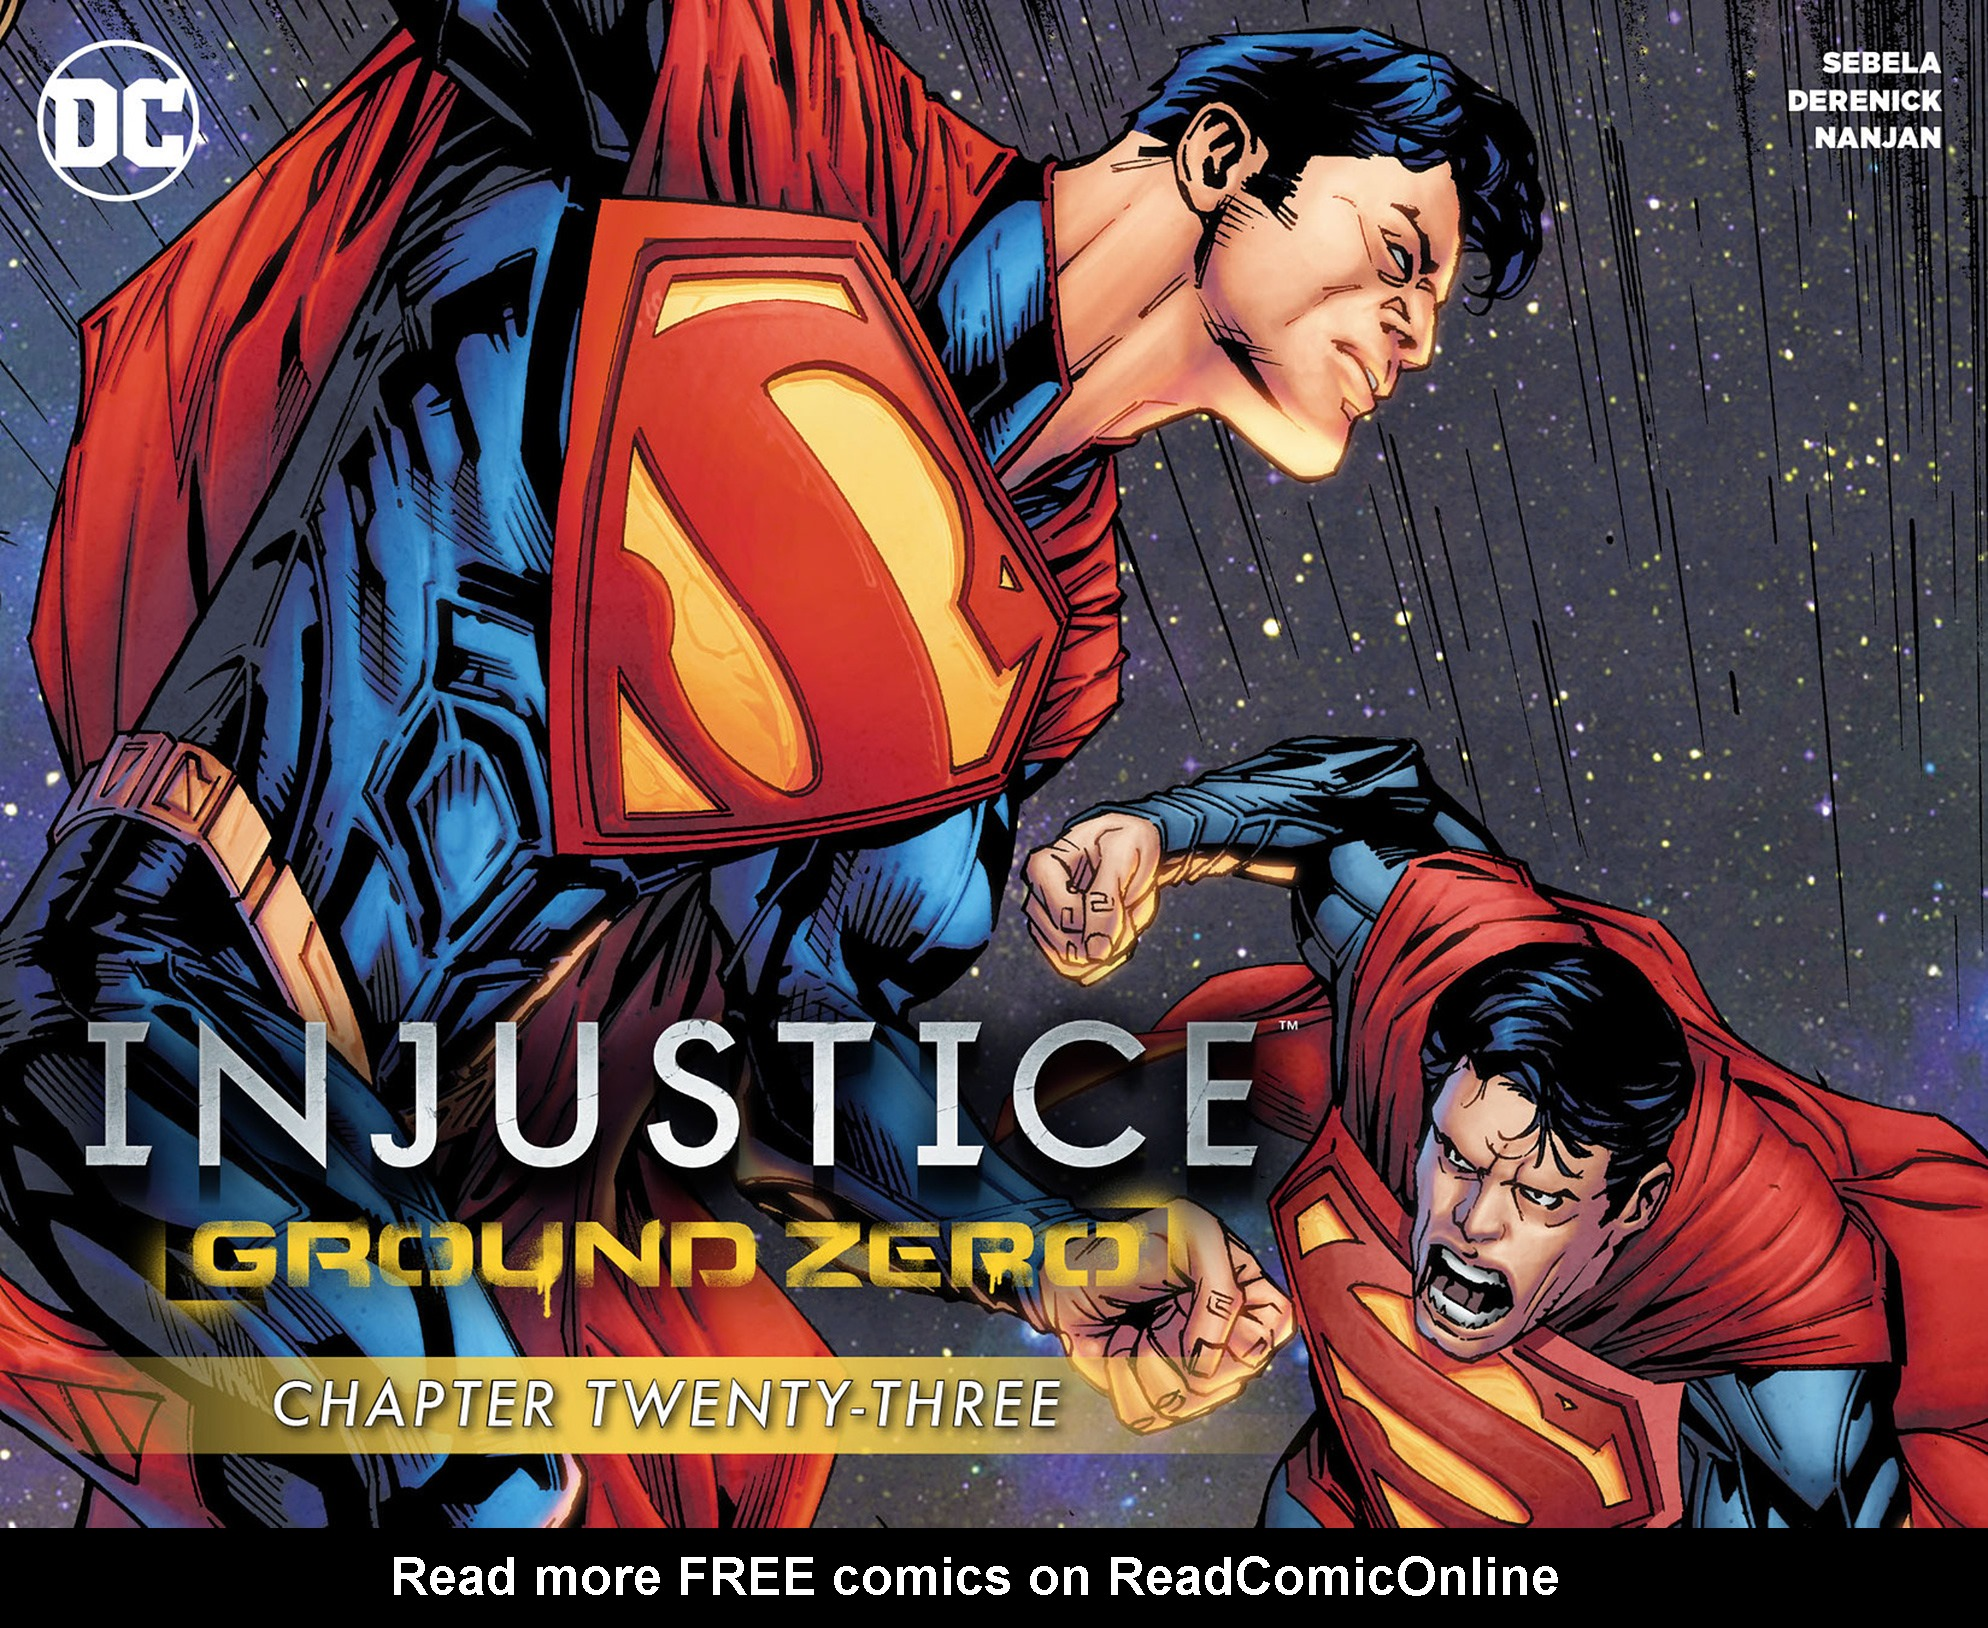 Read online Injustice: Ground Zero comic -  Issue #23 - 1